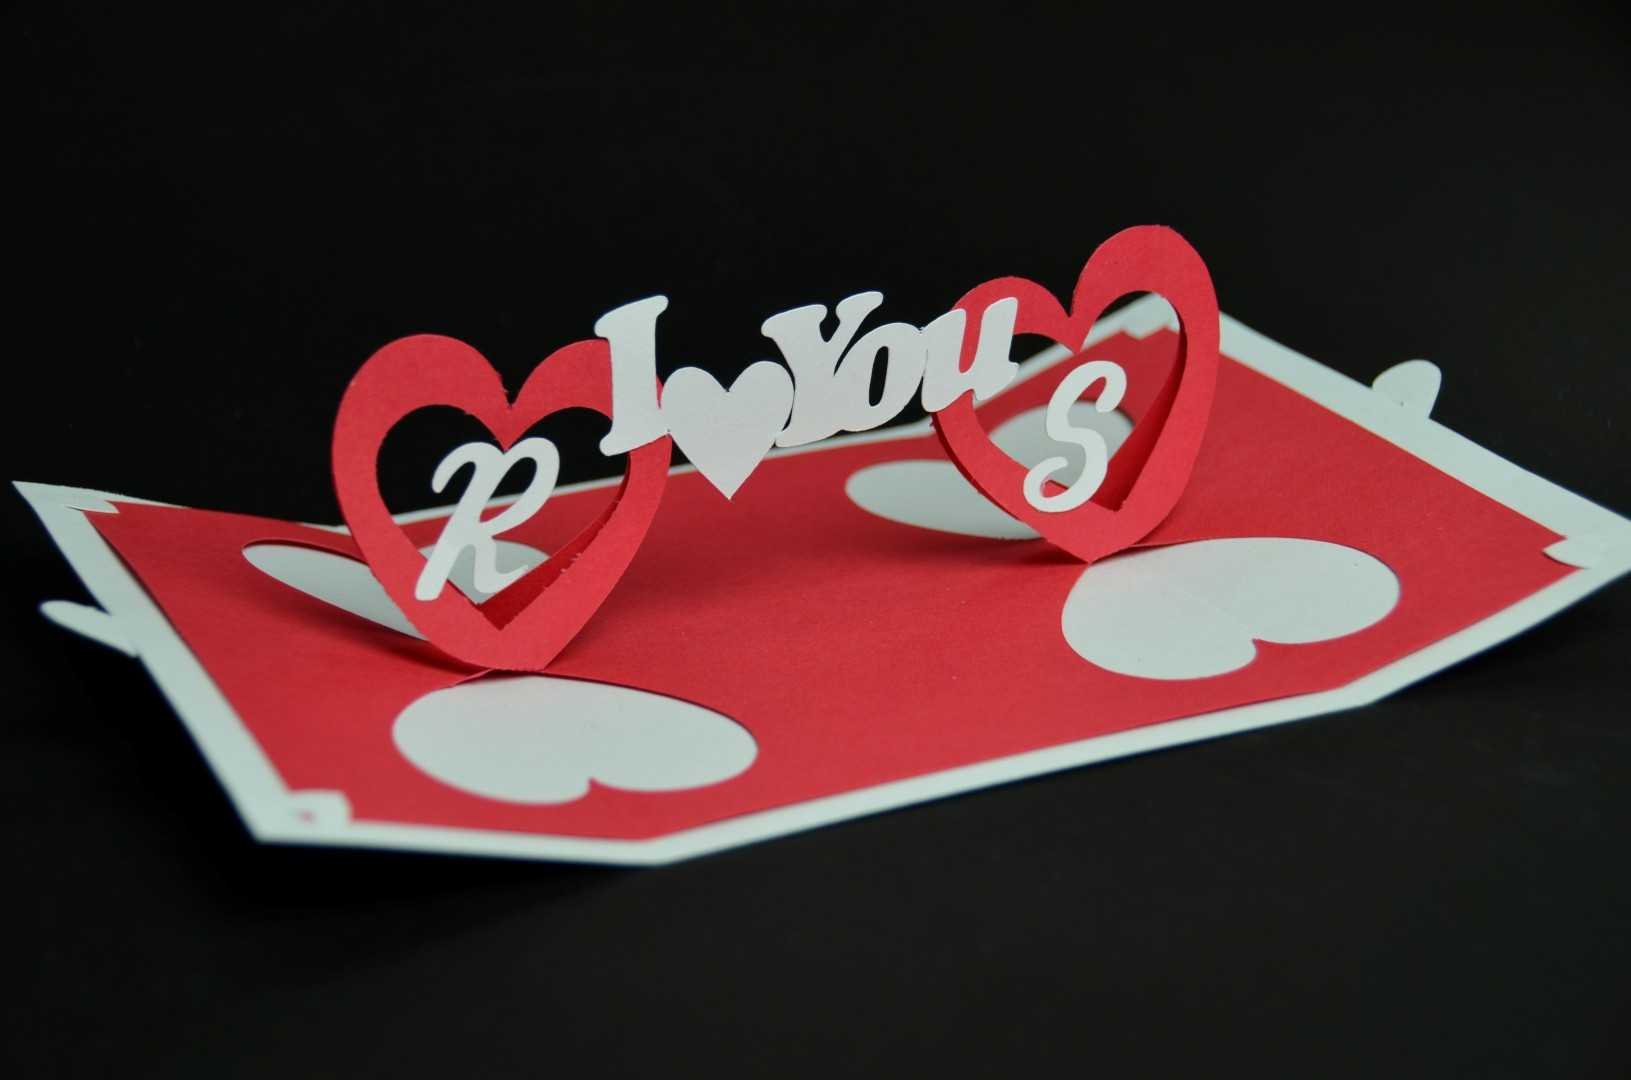 Valentine's Day Pop Up Card: Twisting Heart - Creative Pop Intended For Twisting Hearts Pop Up Card Template